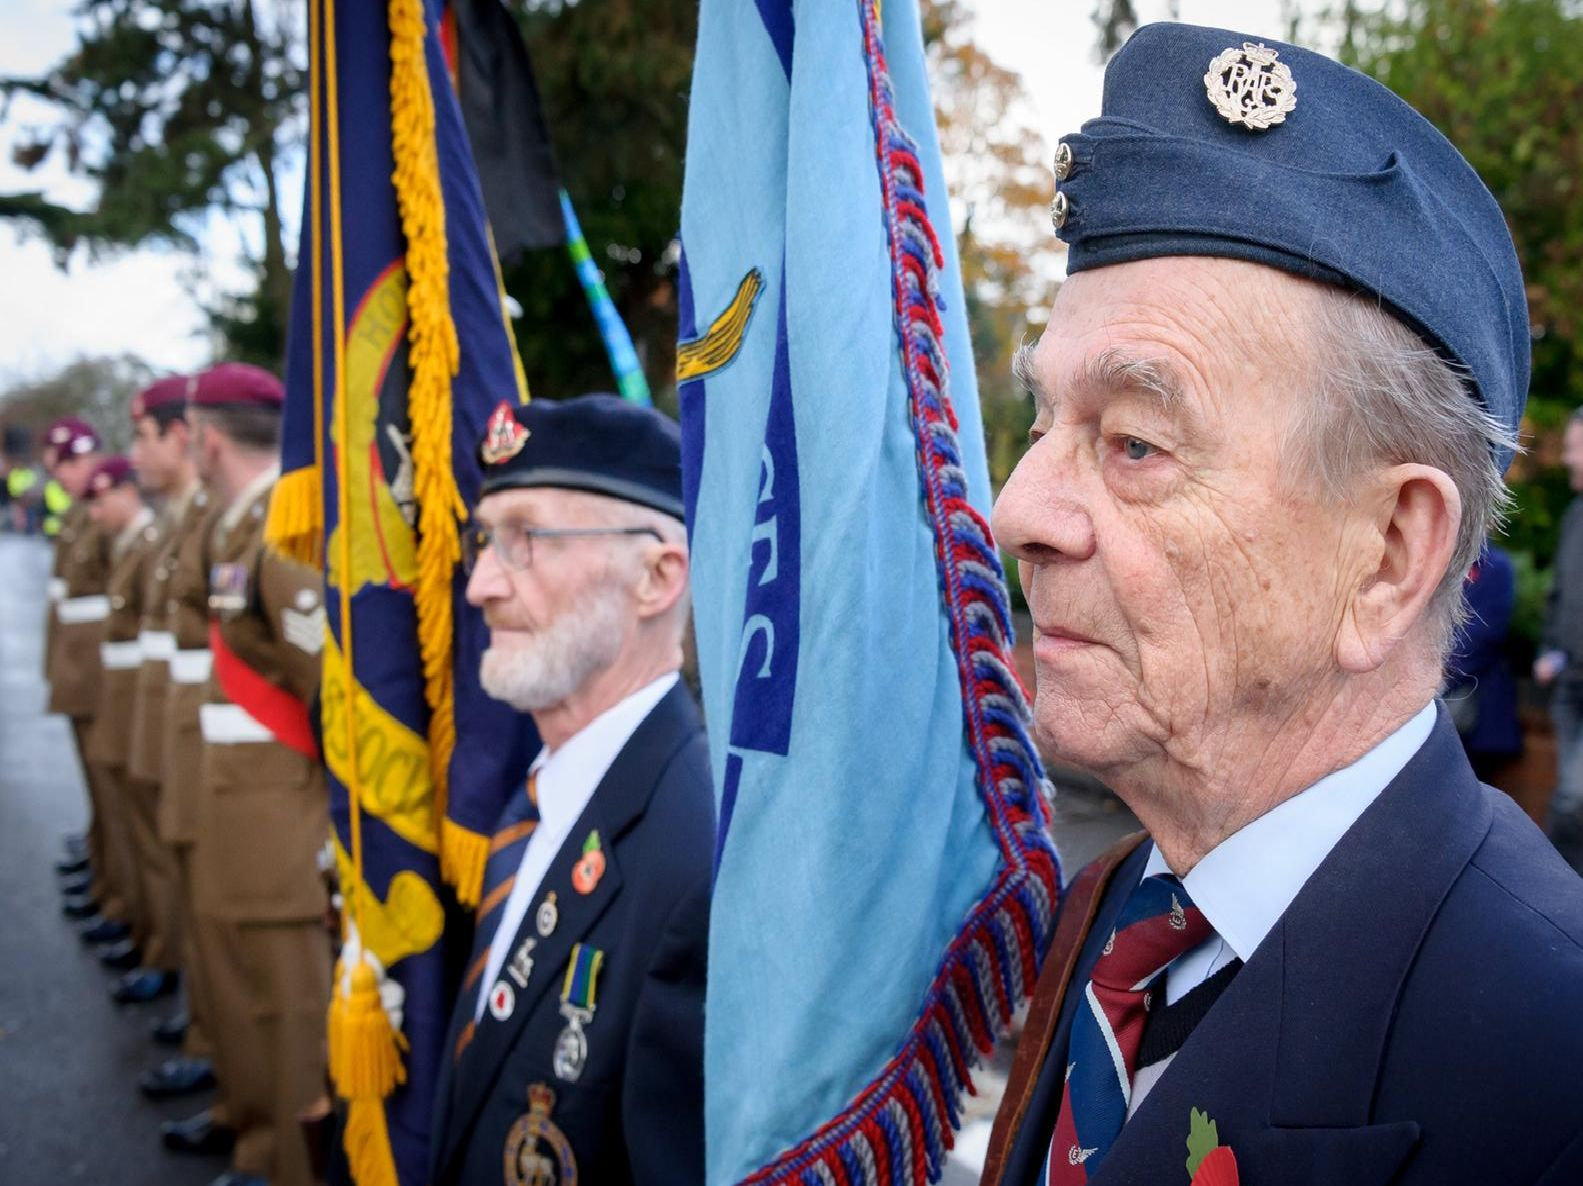 Two veterans stand alongside soldiers from the Parachute Regiment.